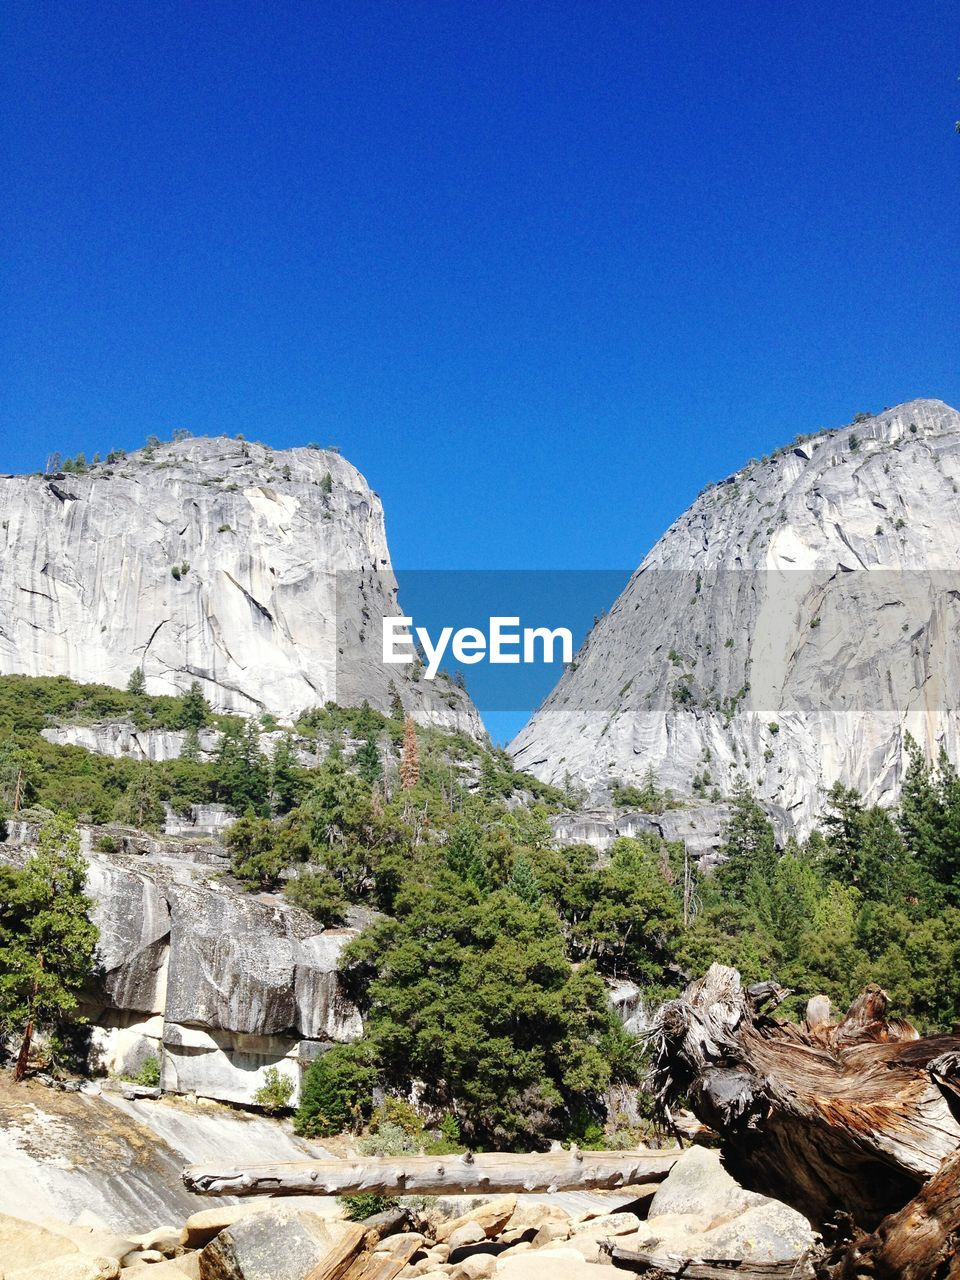 mountain, nature, clear sky, blue, rock - object, copy space, beauty in nature, scenics, no people, day, landscape, outdoors, high